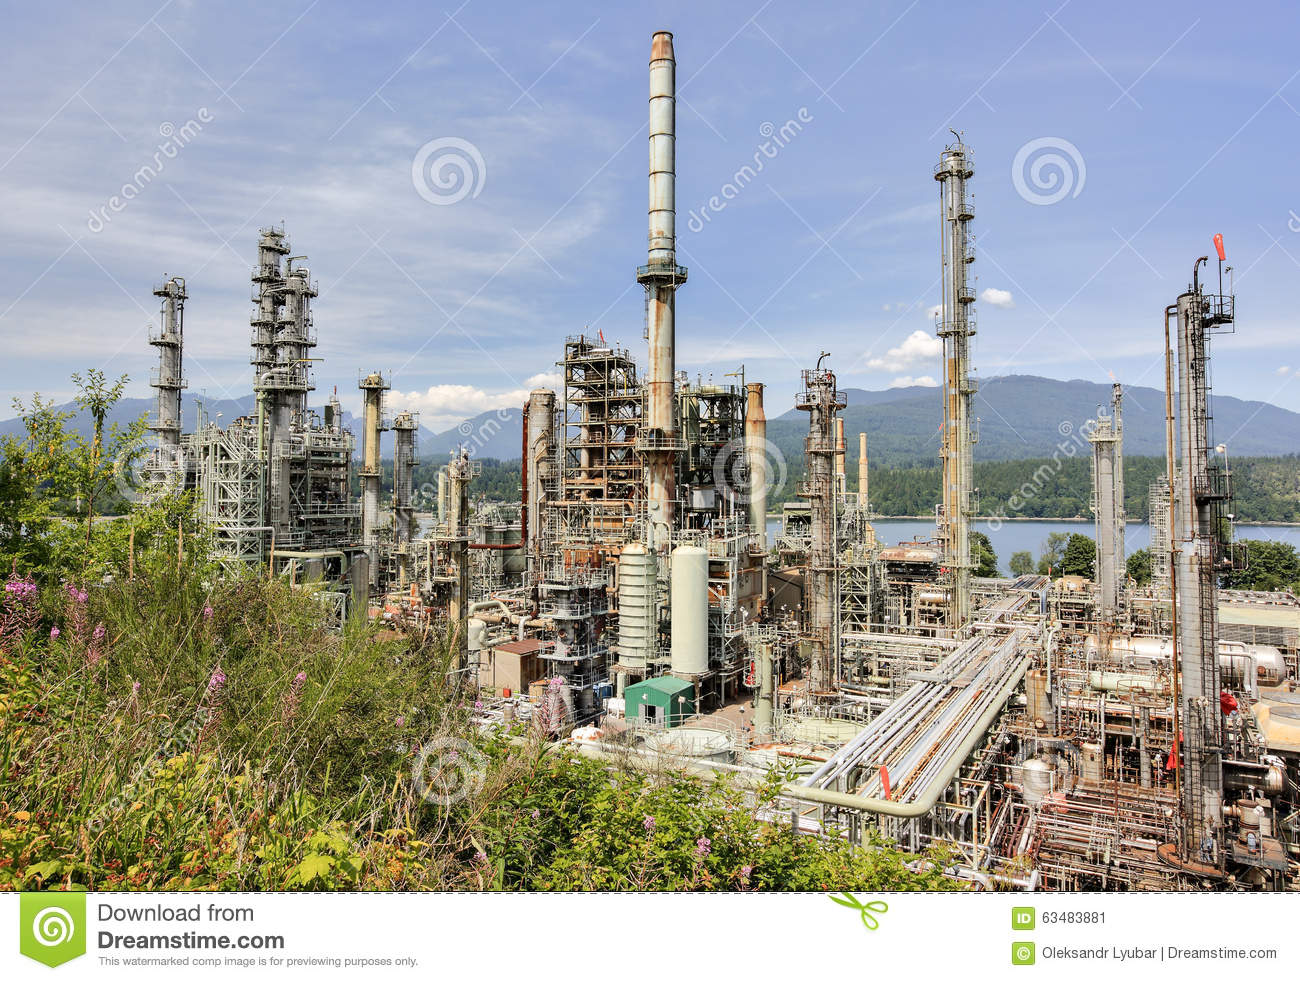 Vancouver oil refinery stock image  Image of clouds